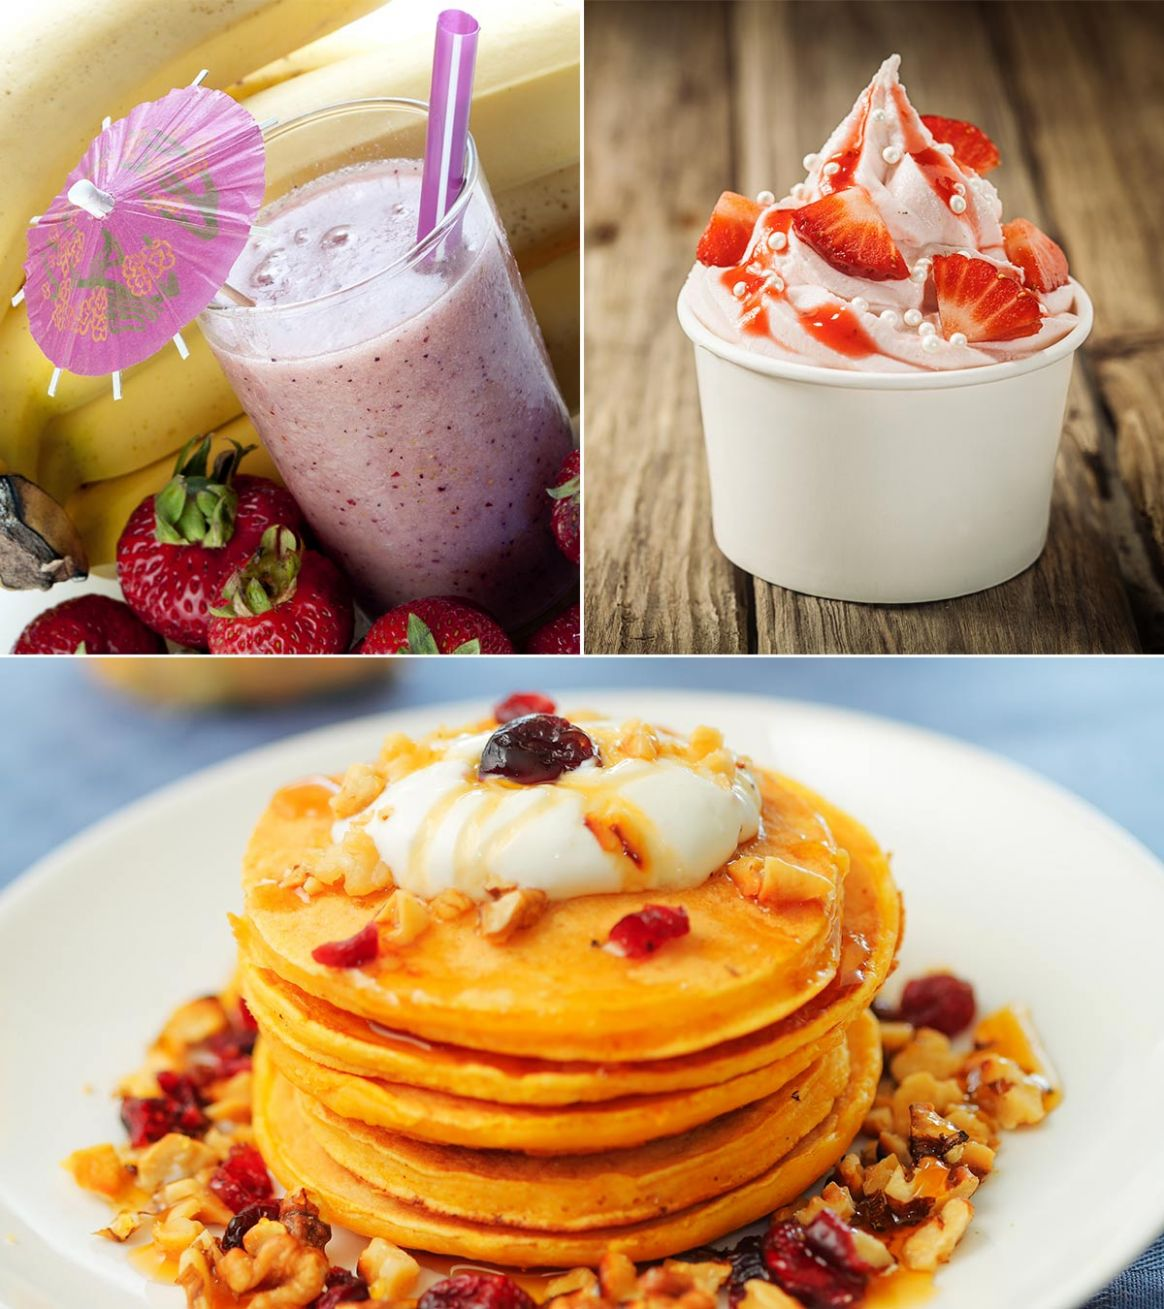 8 Simple And Healthy Yogurt Recipes For Kids - Simple Yogurt Recipes